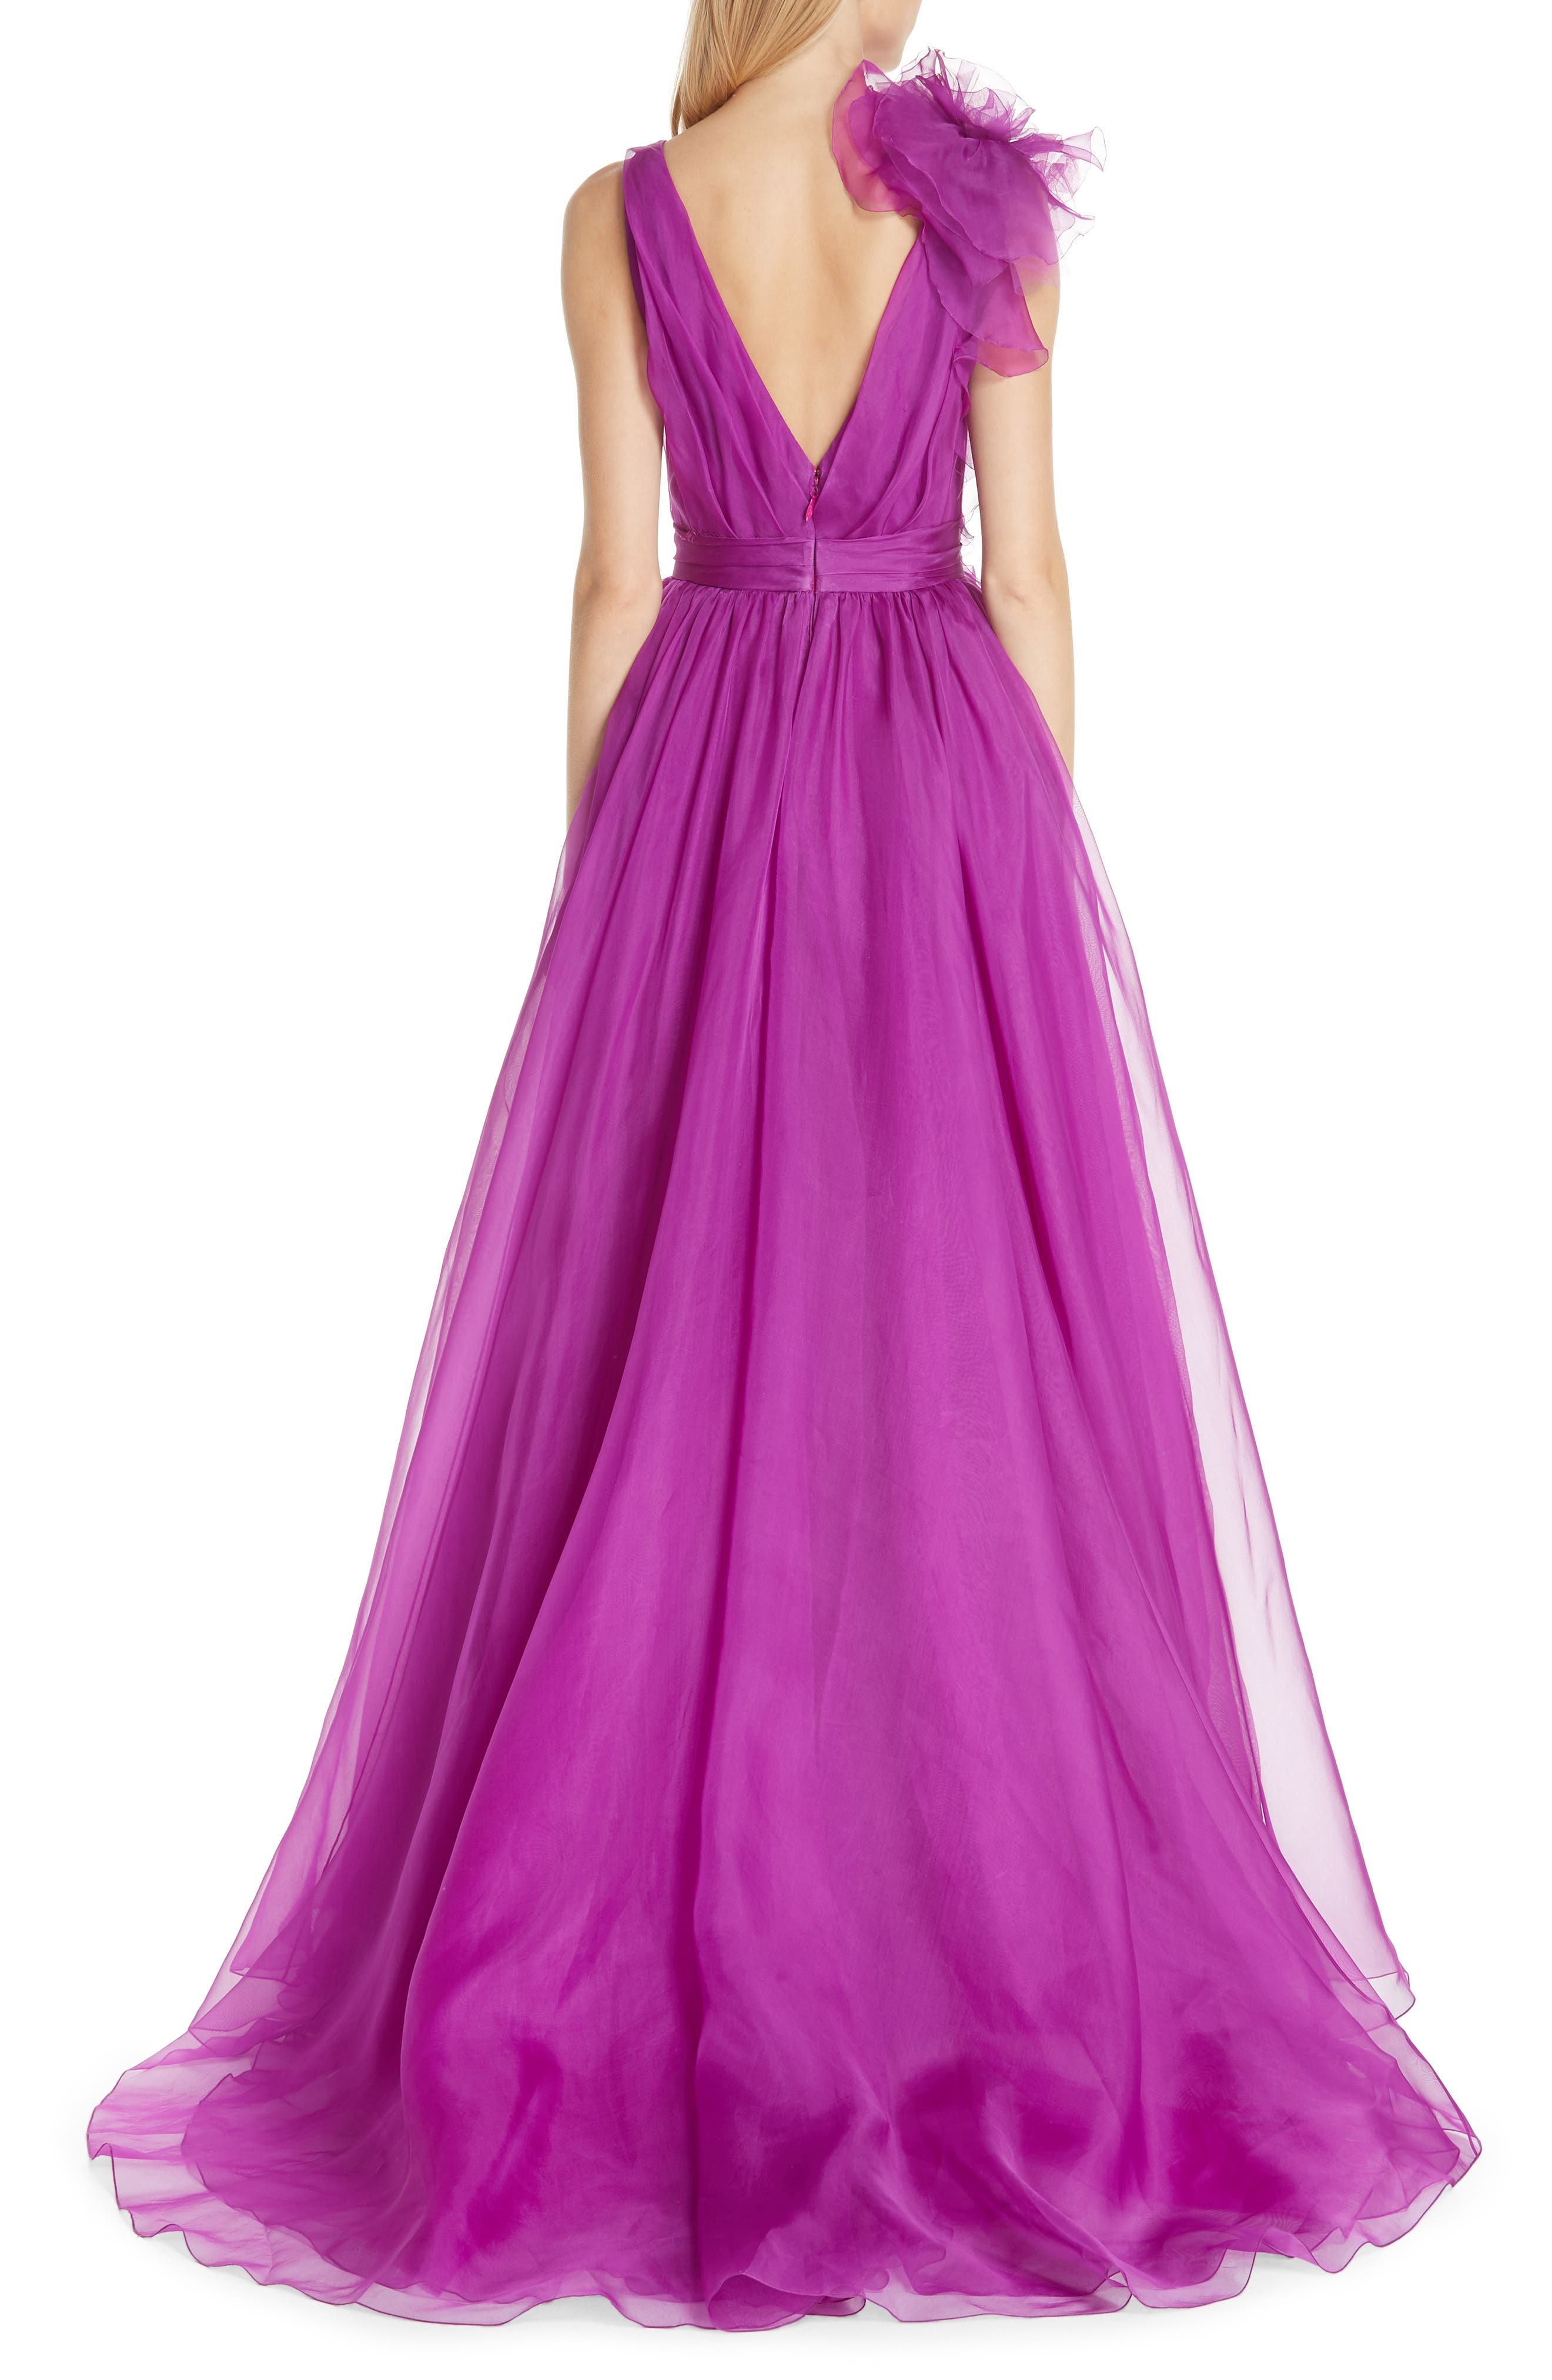 Ruffle Silk Organza Evening Dress,                             Alternate thumbnail 2, color,                             ORCHID